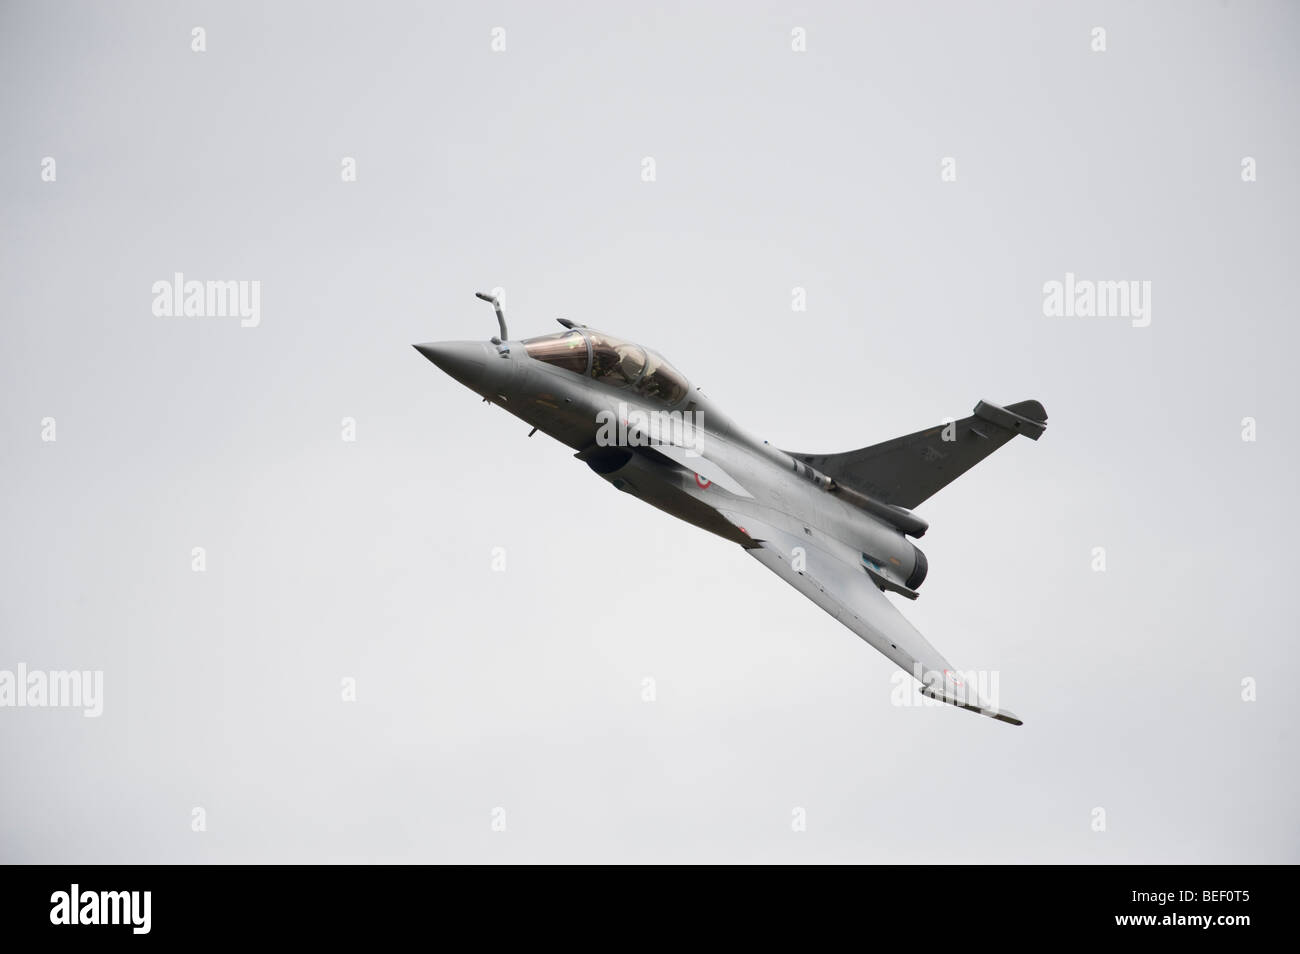 Dassault Rafale French Air Force fighter aircraft - Stock Image